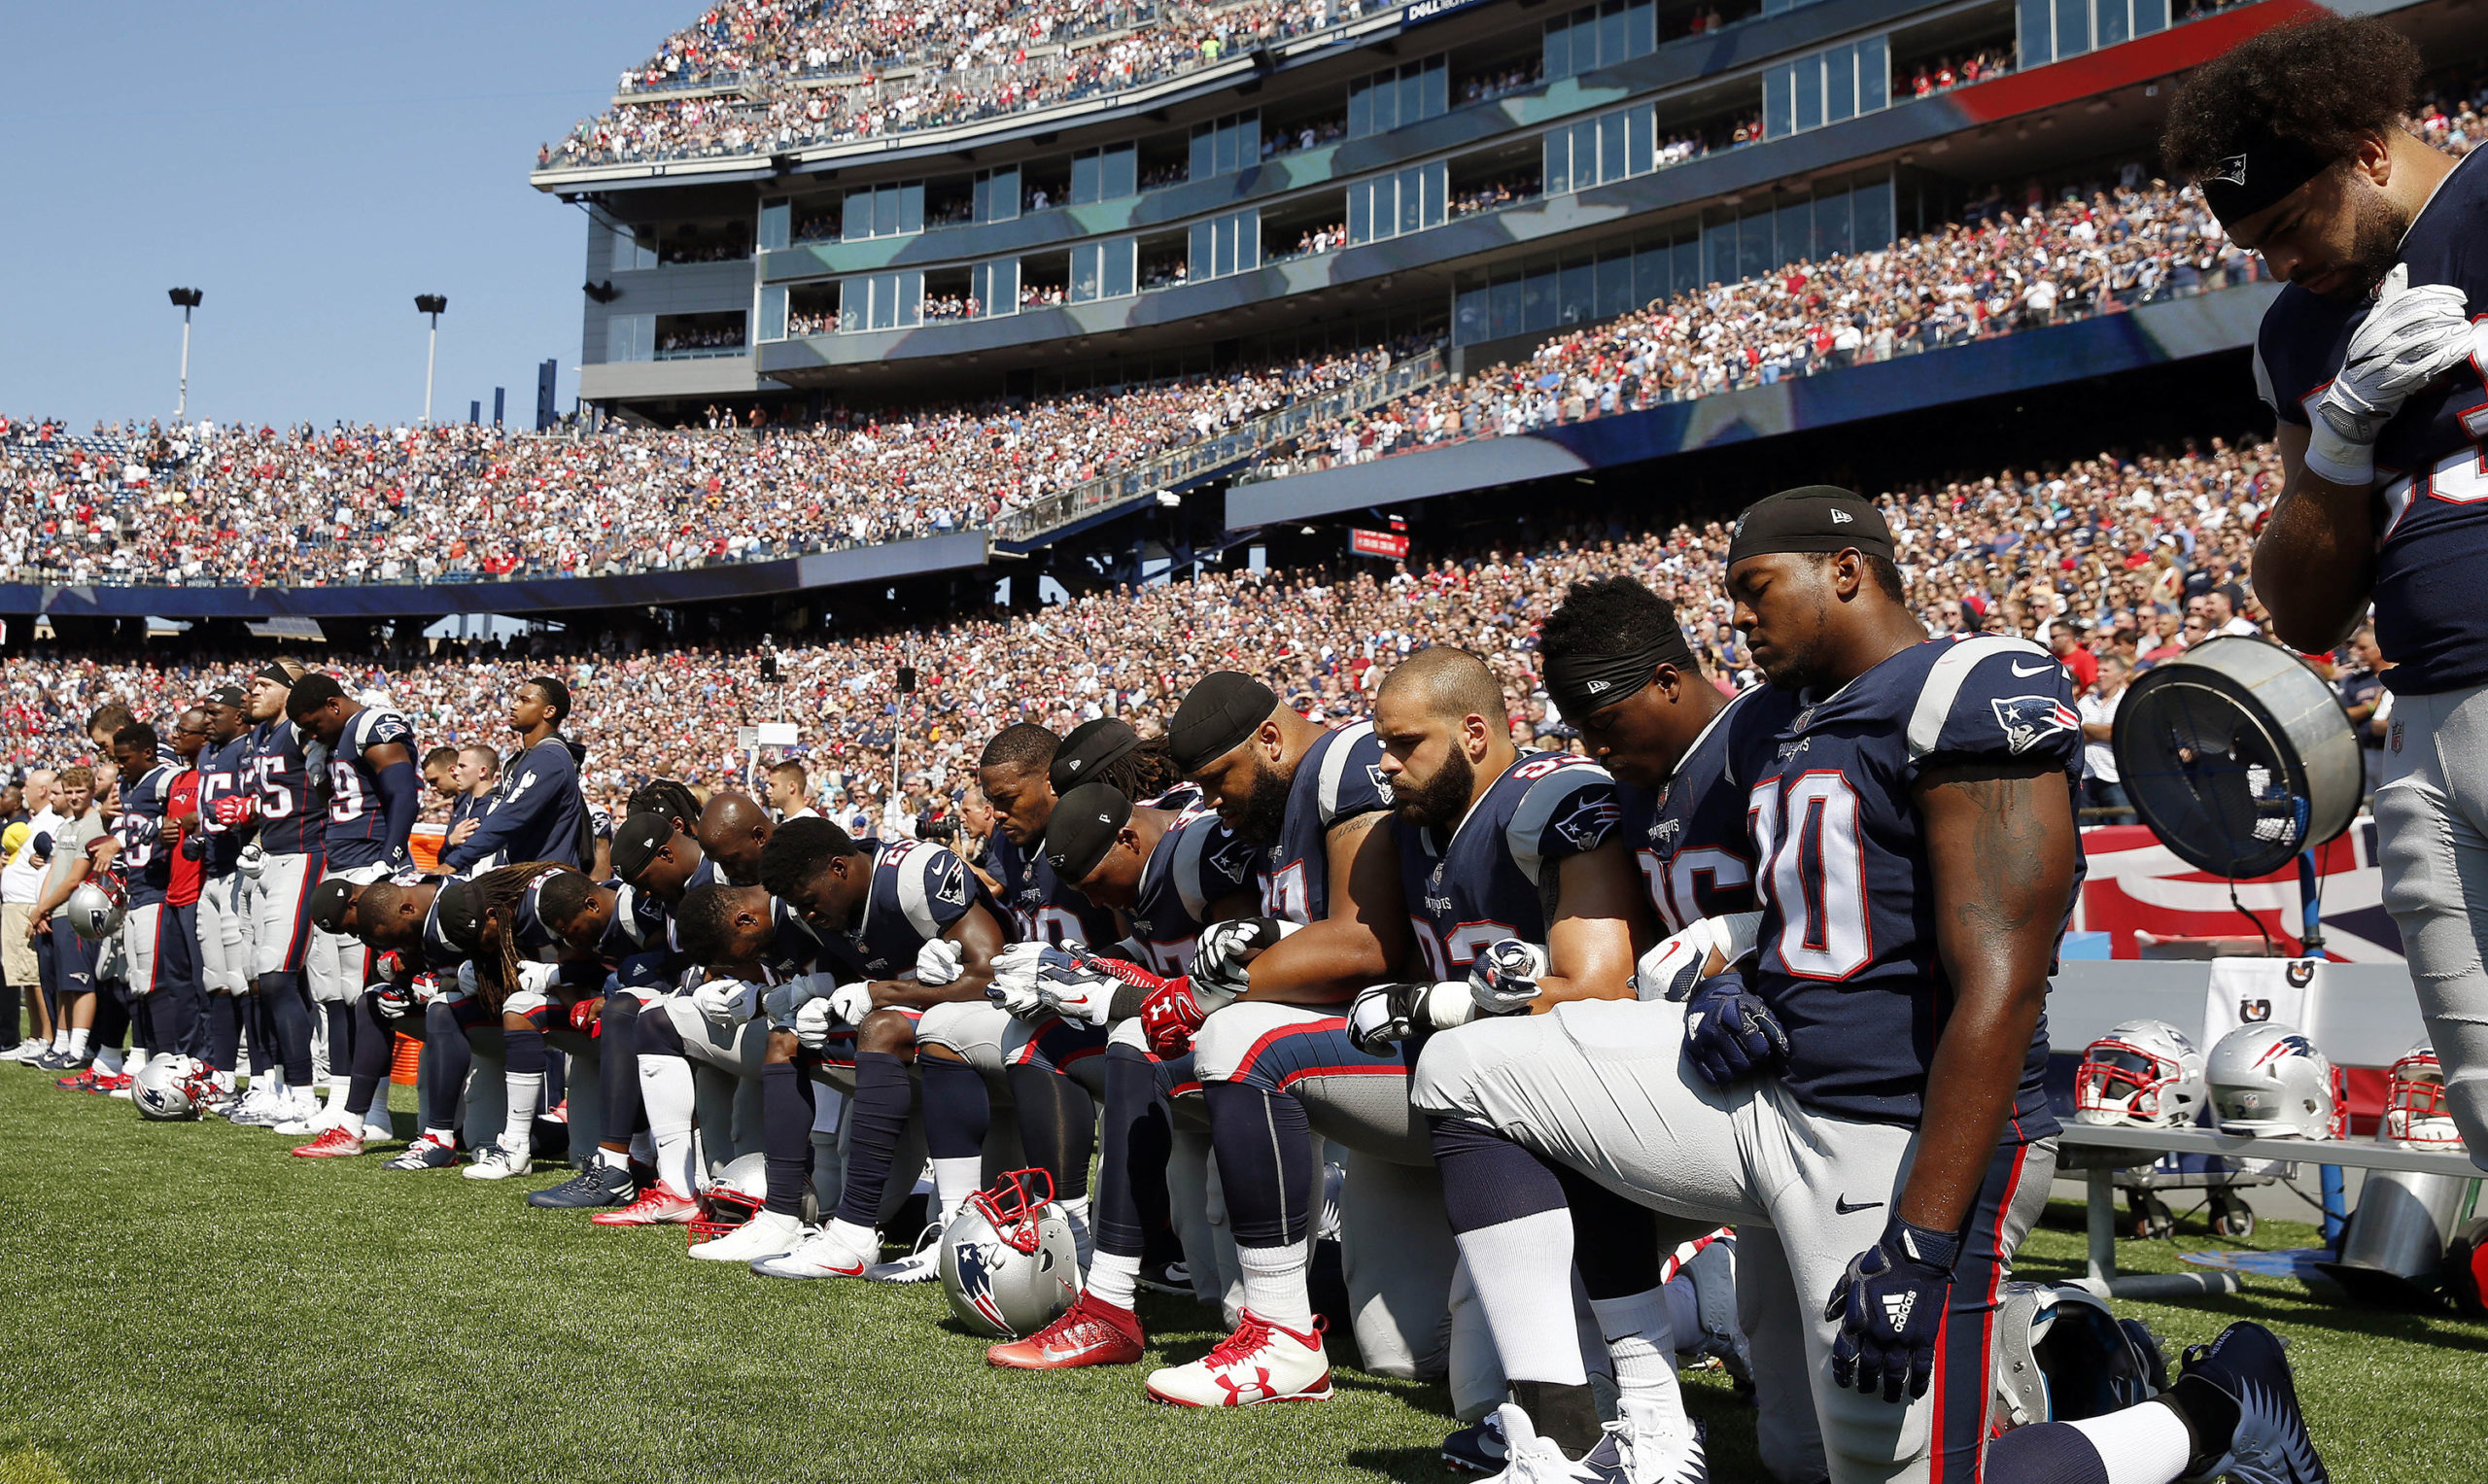 football players new england patriots take a knee national anthem